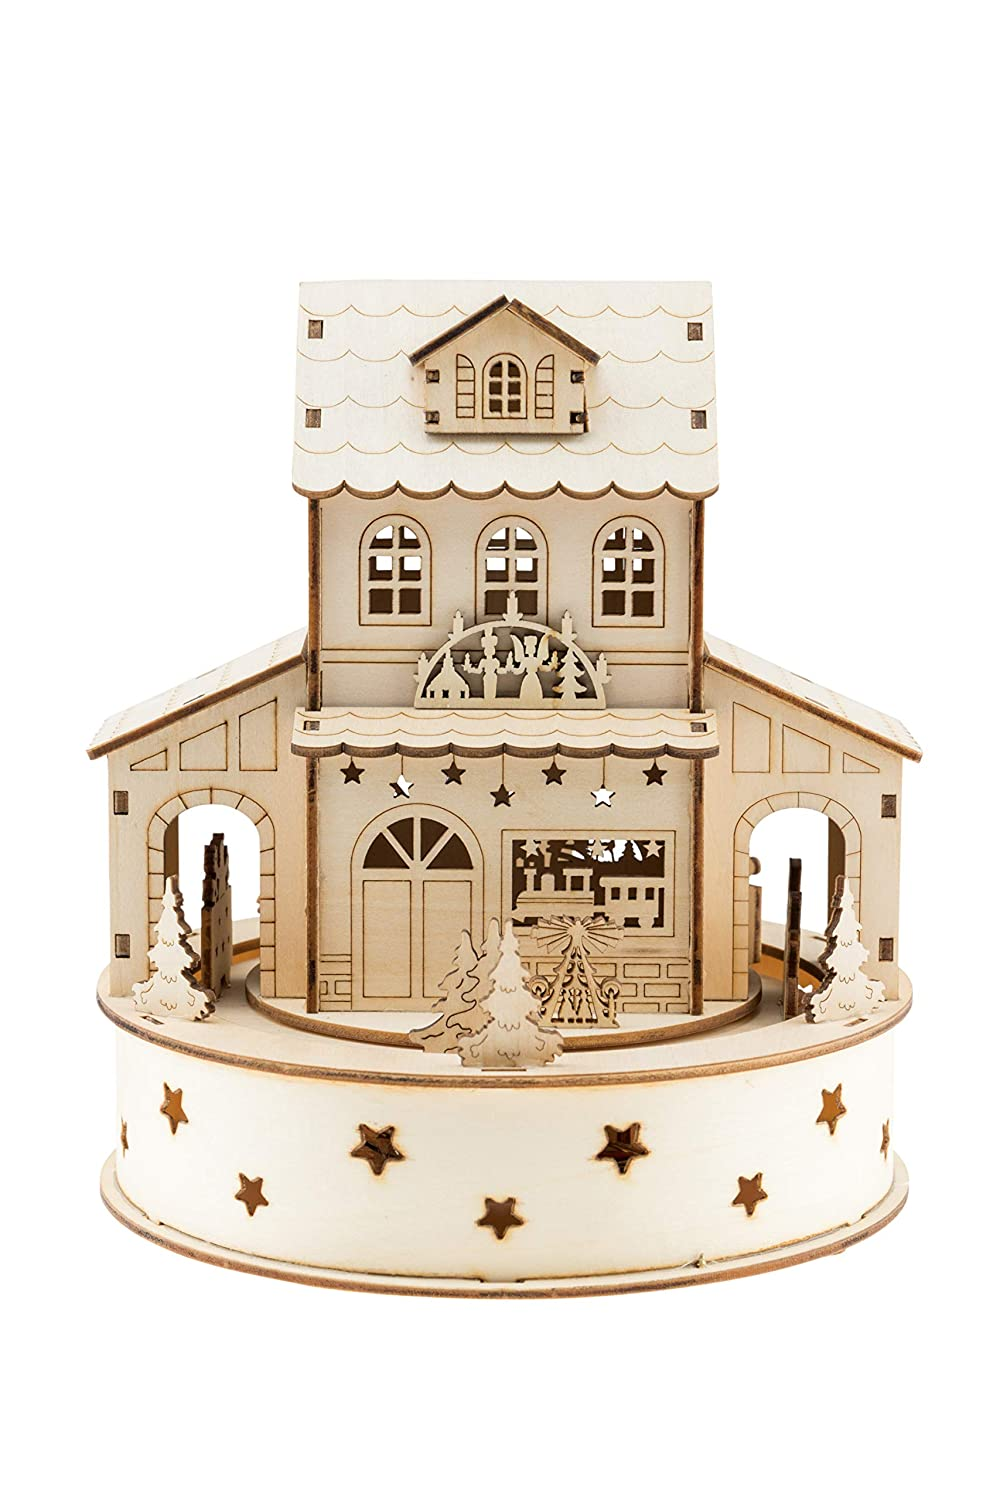 Build Your Own Christmas Village Clever Creations Traditional Wooden Table Top Christmas Decoration Unique House with Battery Operated Rotation and Christmas Lights Firewood Cutting and Deer